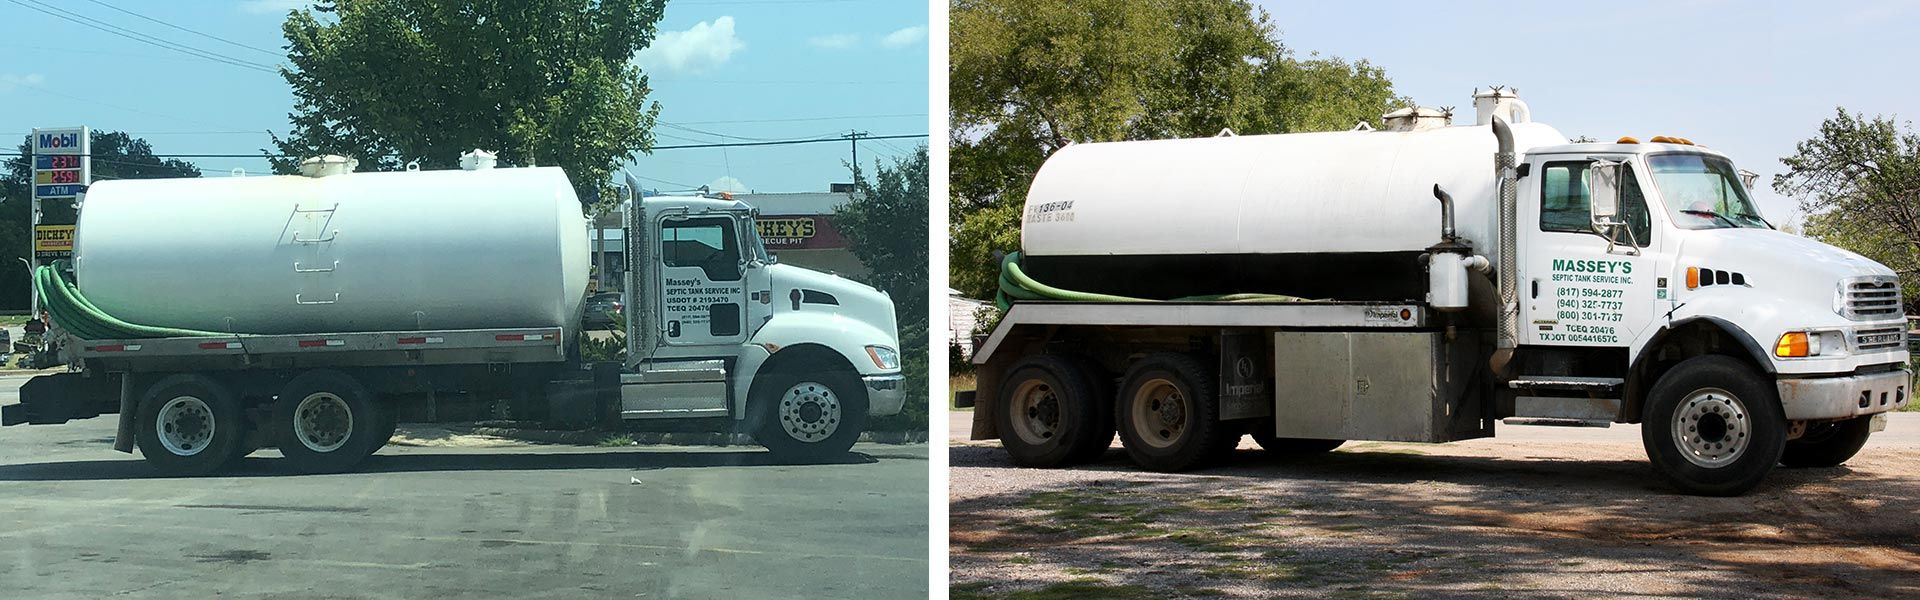 MSTS Services Septic Tank Flushing Trucks